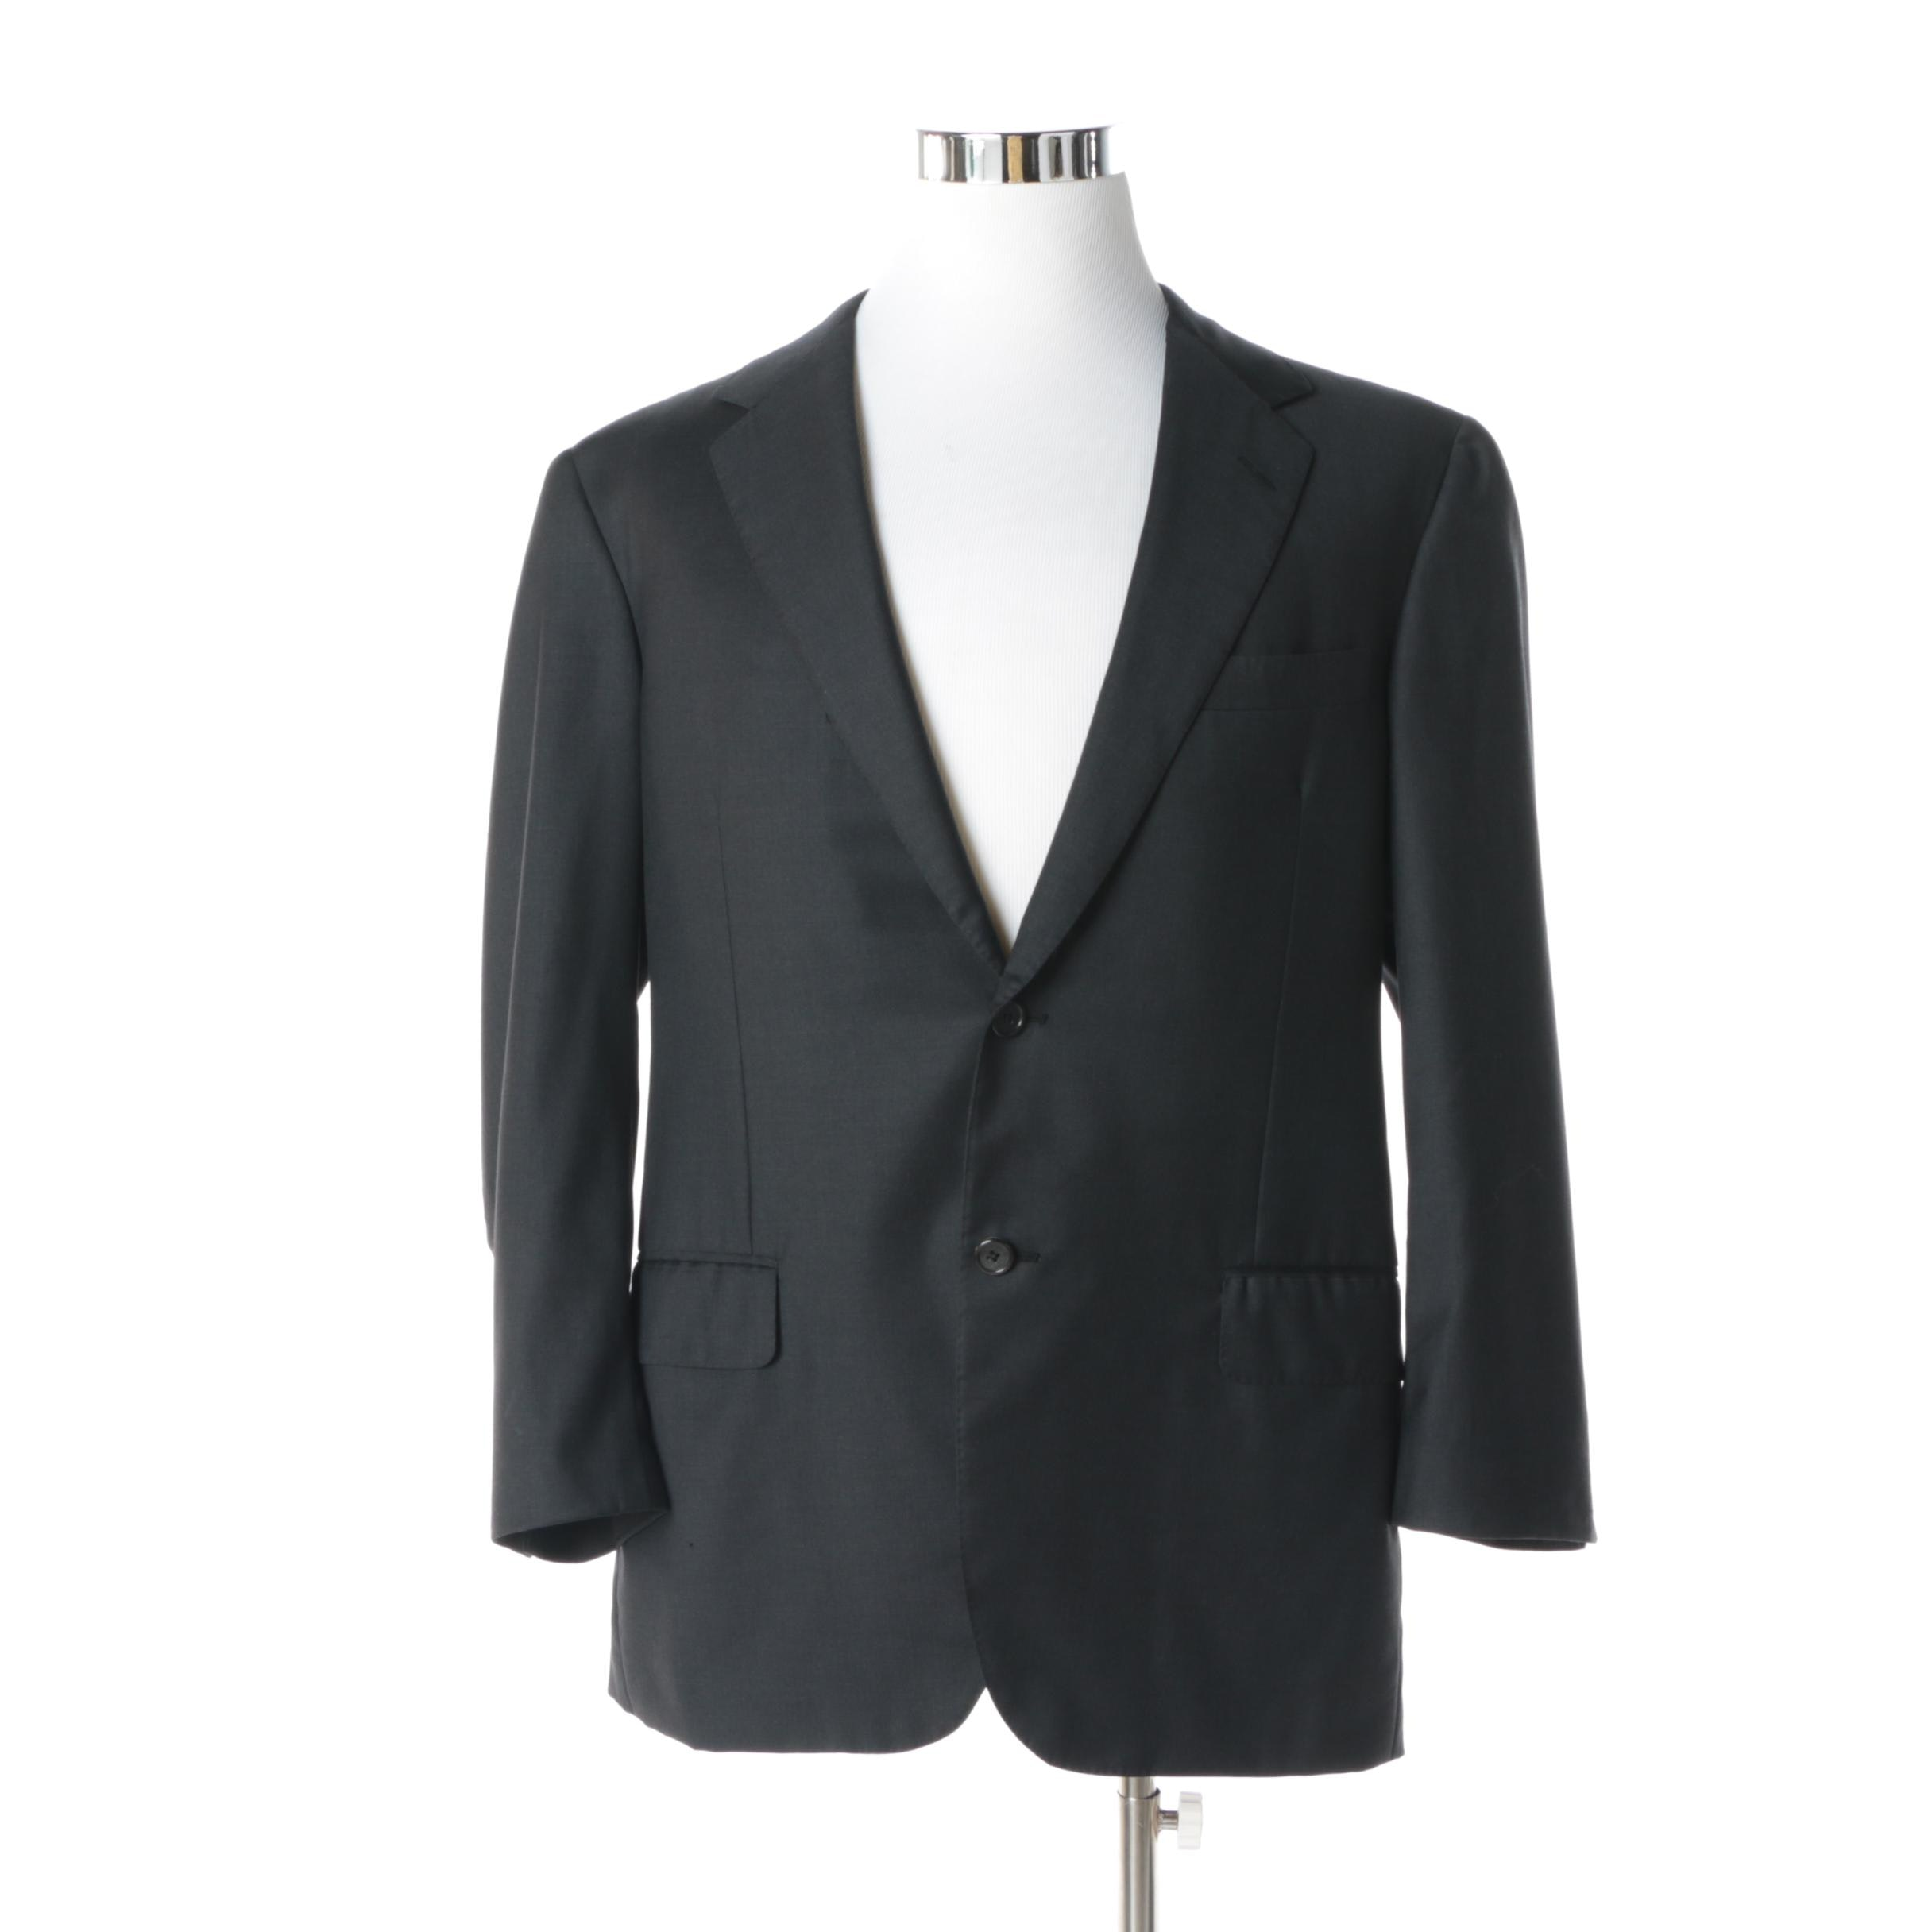 Men's Oxford Clothes for Mosher's Charcoal Wool Blend Blazer